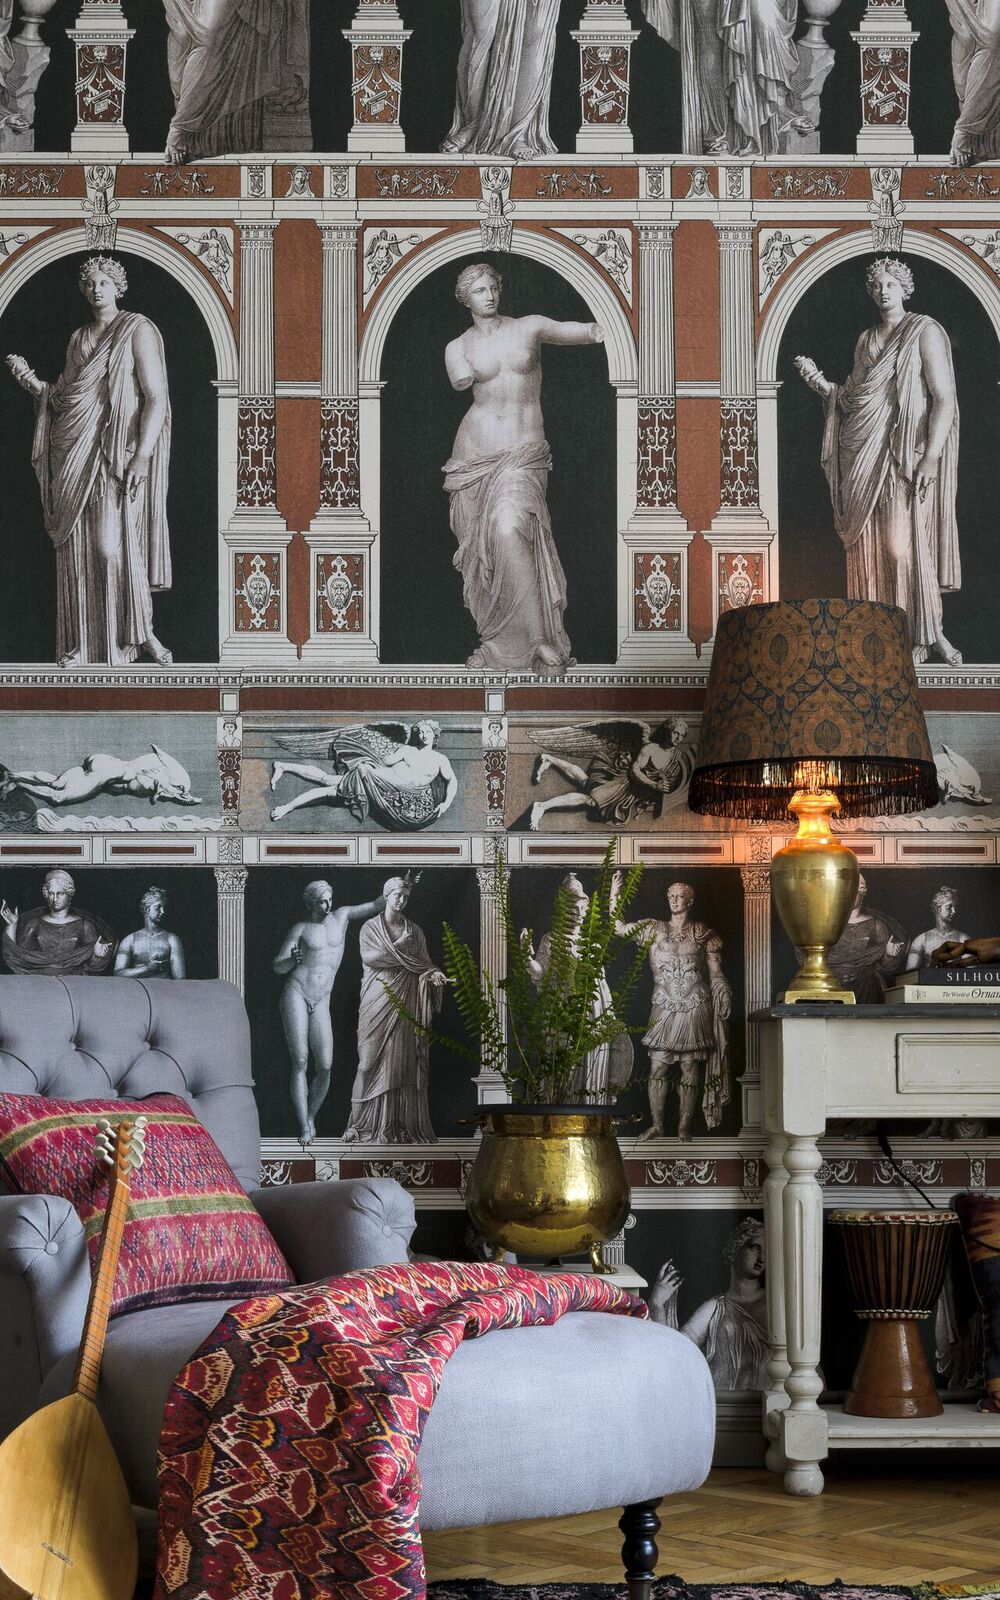 Statues of Antique Wallpaper